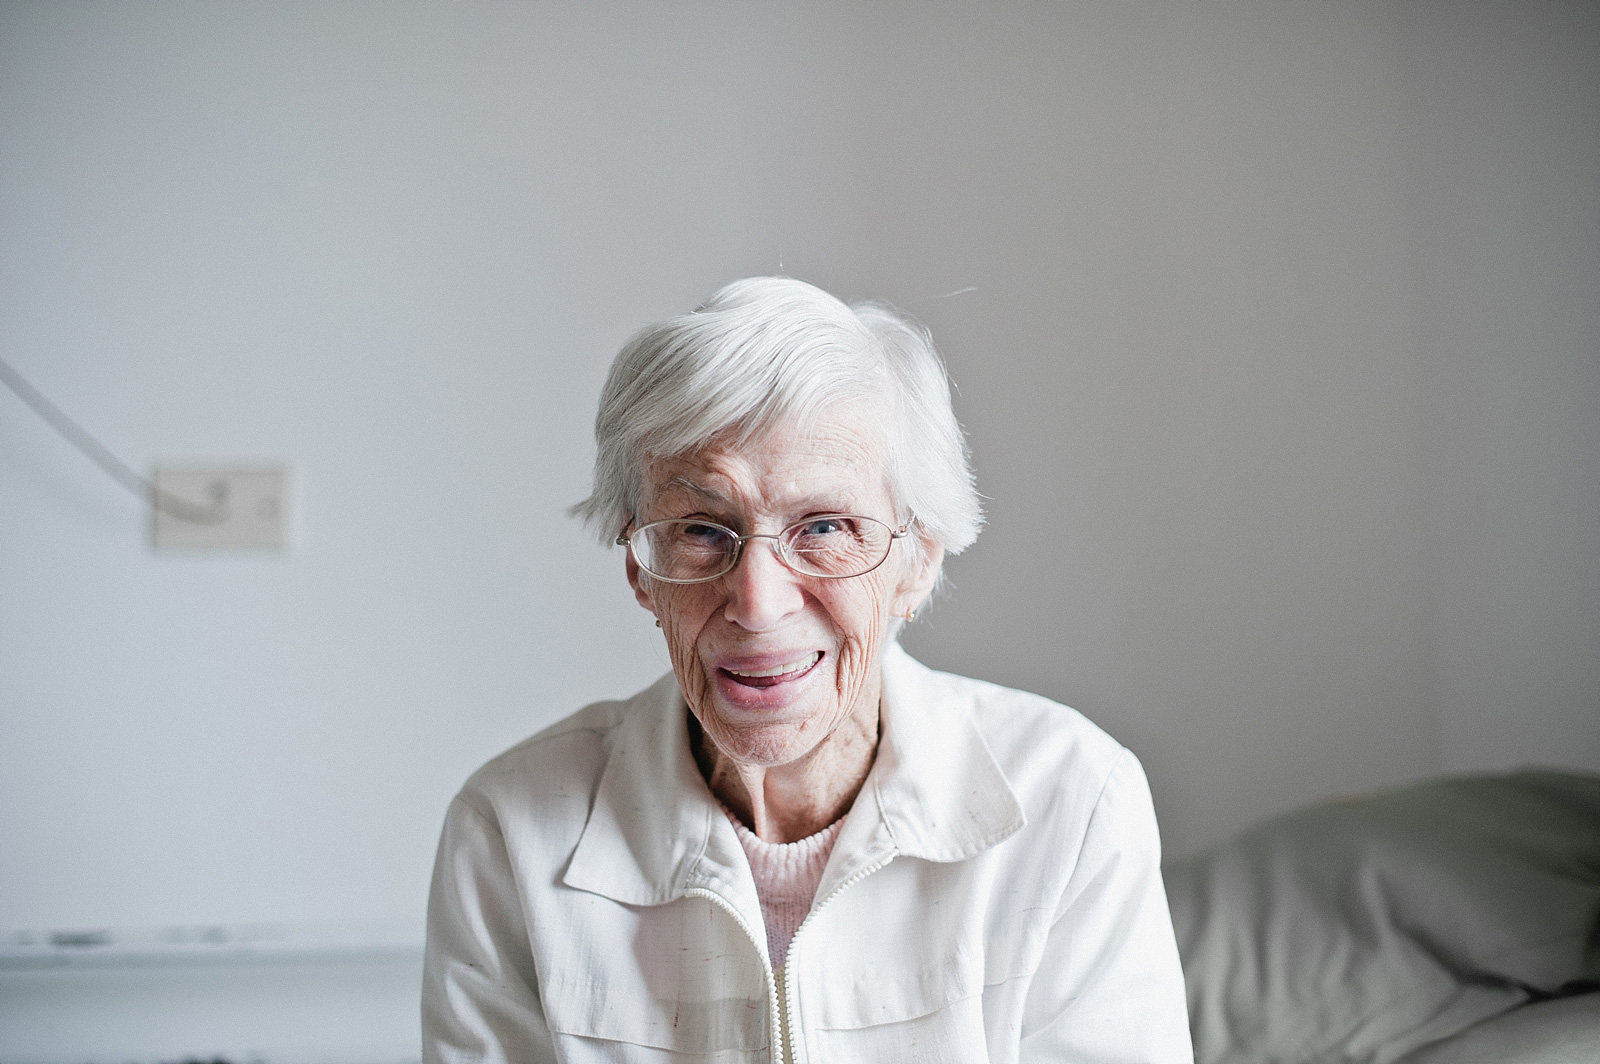 Granny-Smith-KZN-Photographer-Jacki-Bruniquel-1